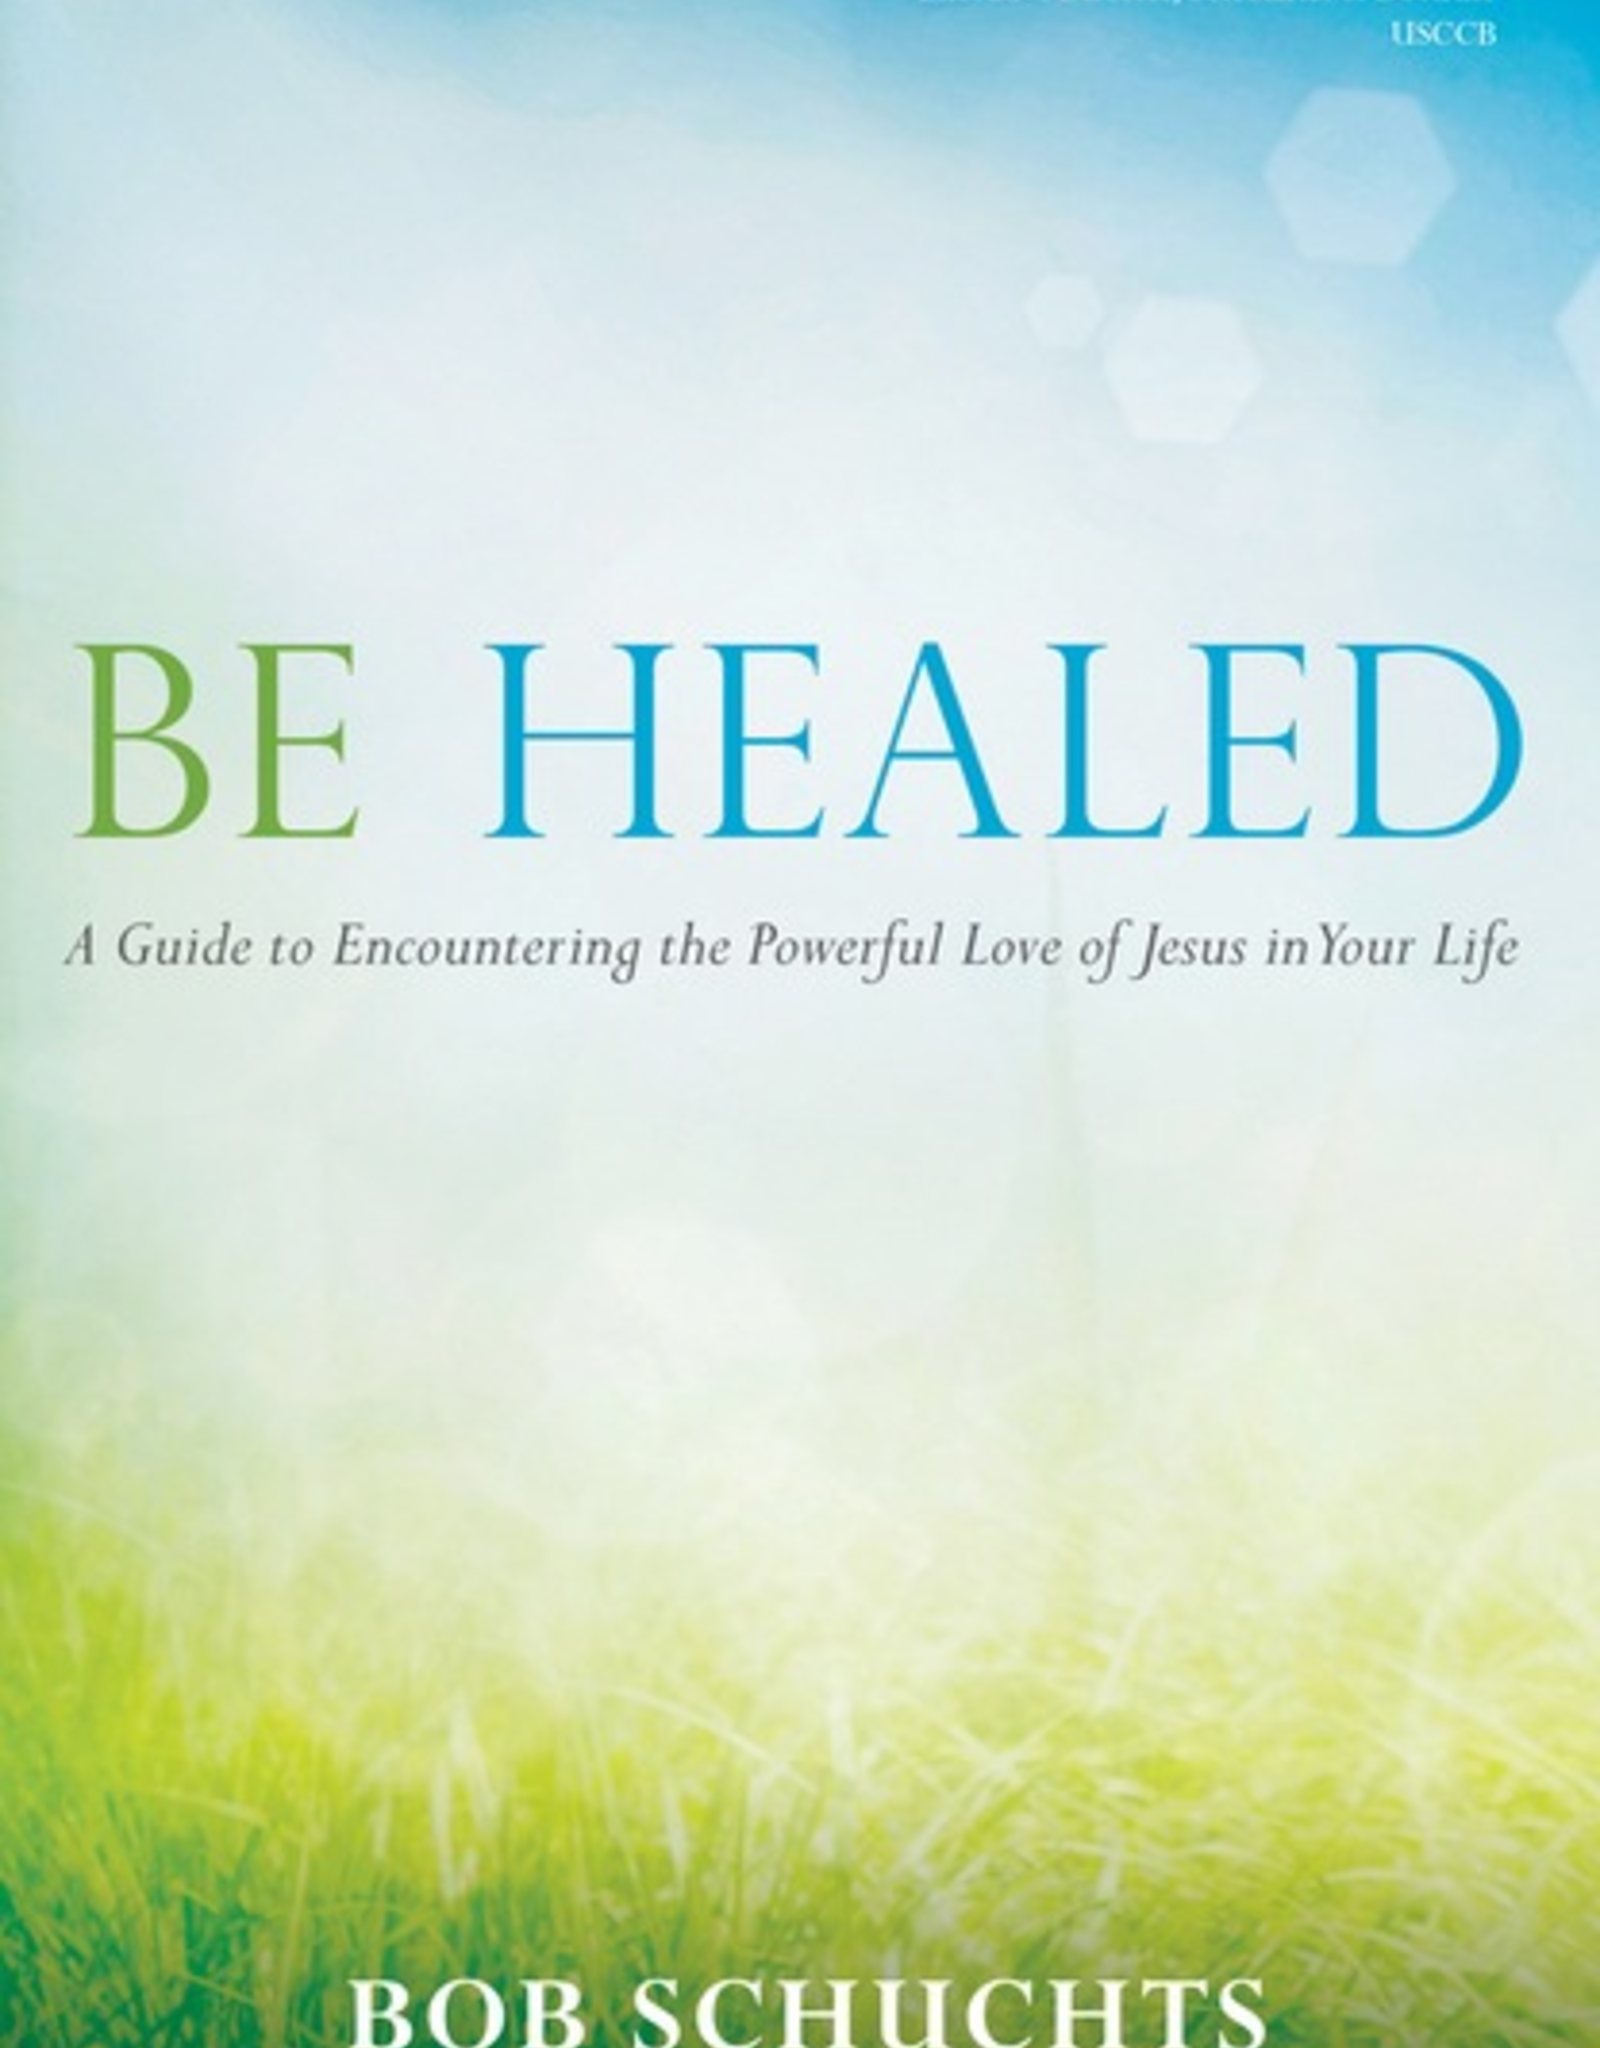 Ave Maria Press Be Healed:  A Guide to Encountering the Powerful Love of Jesus in Your Life, by Bob Schuchts (paperback)